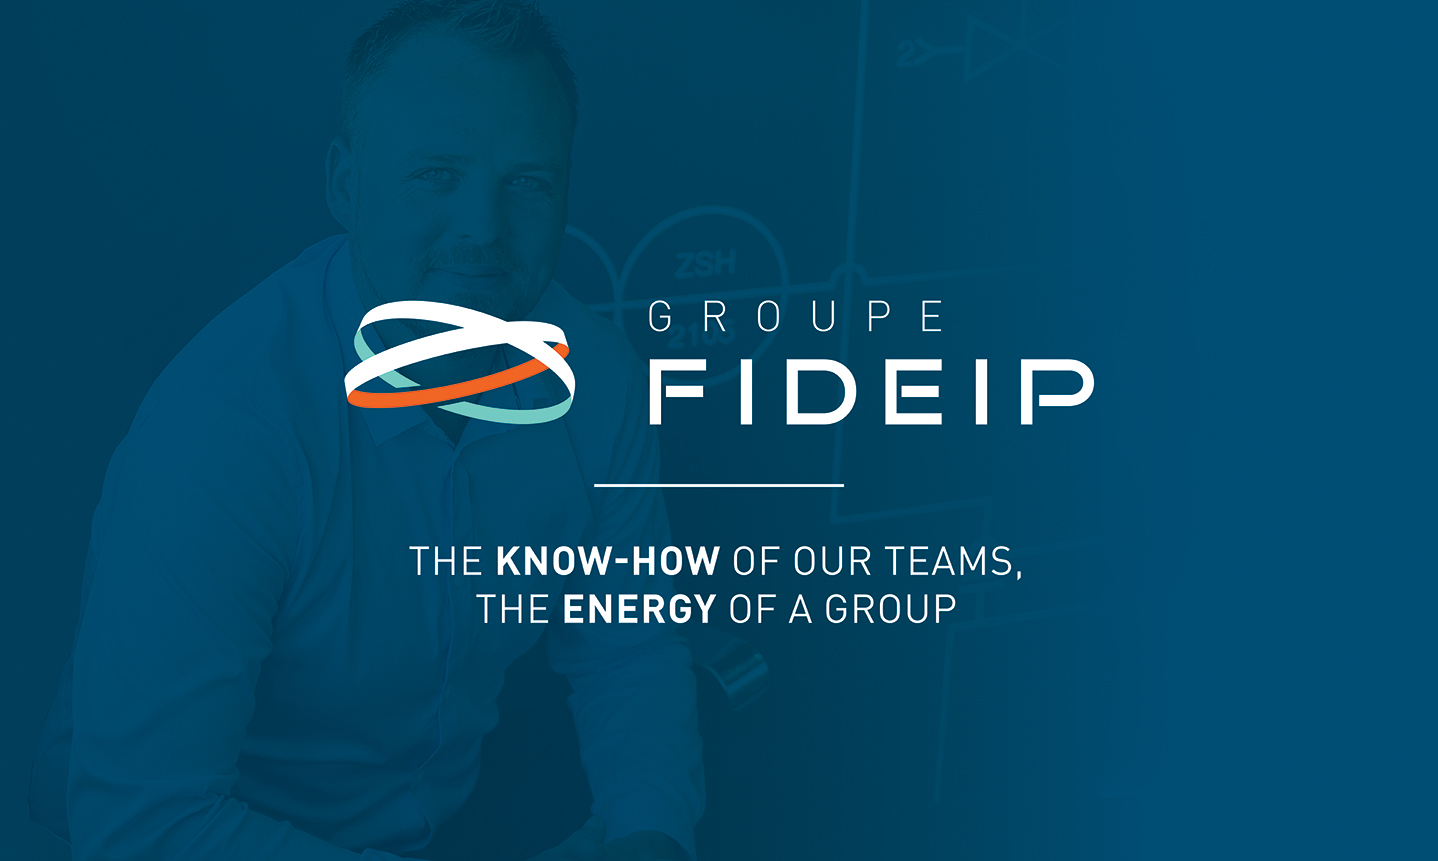 The know-how of our teams, the energy of a group